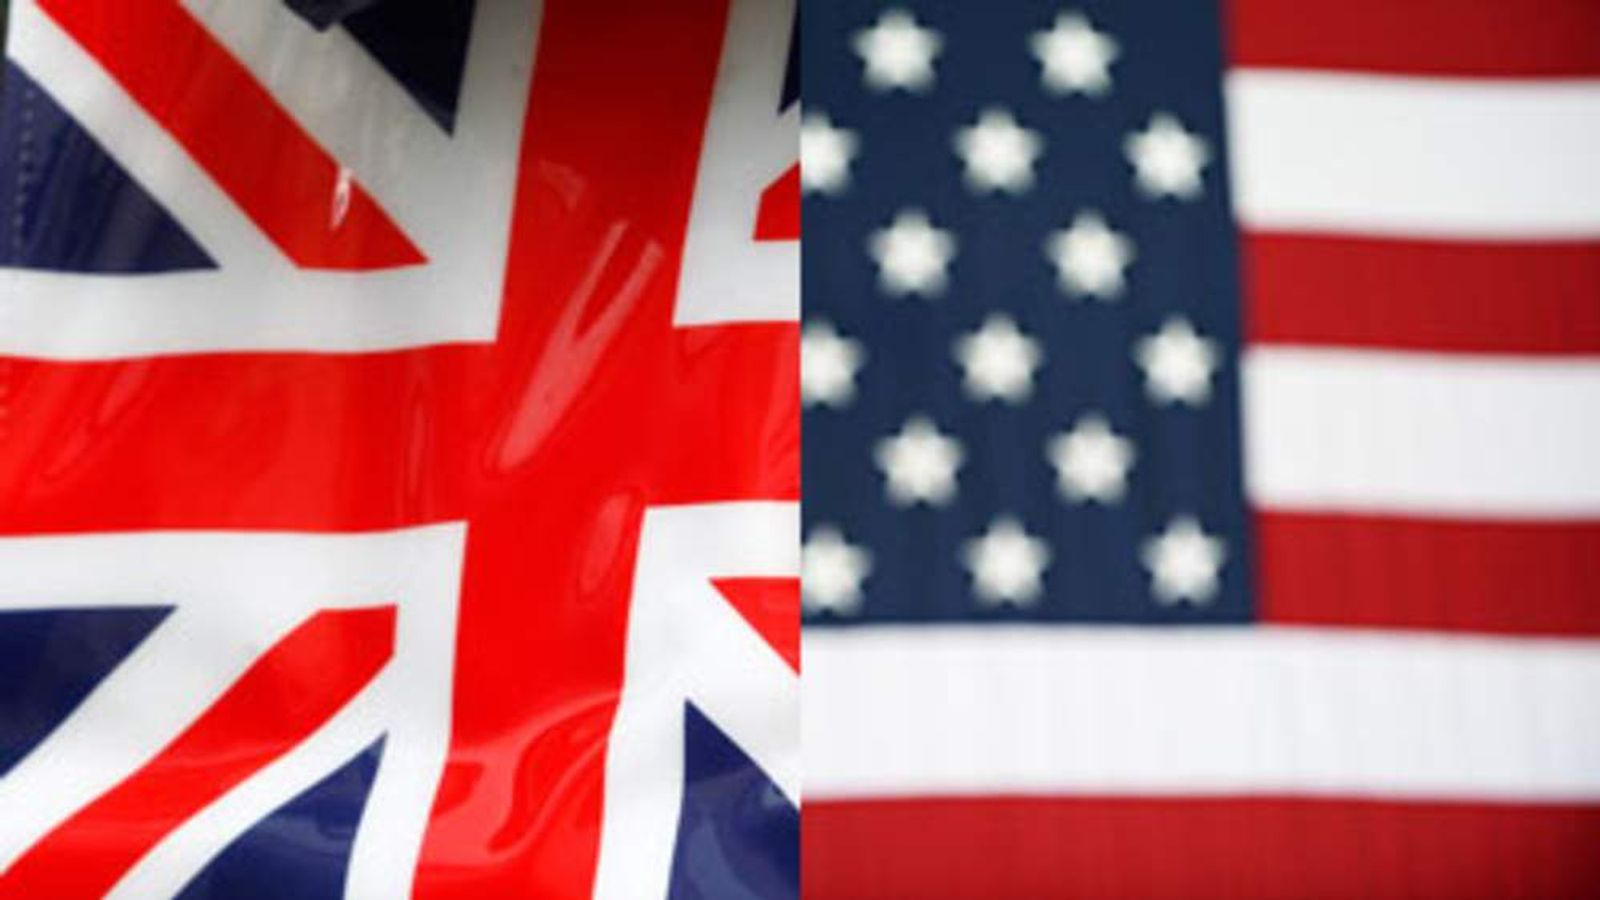 Union Jack and US flag.